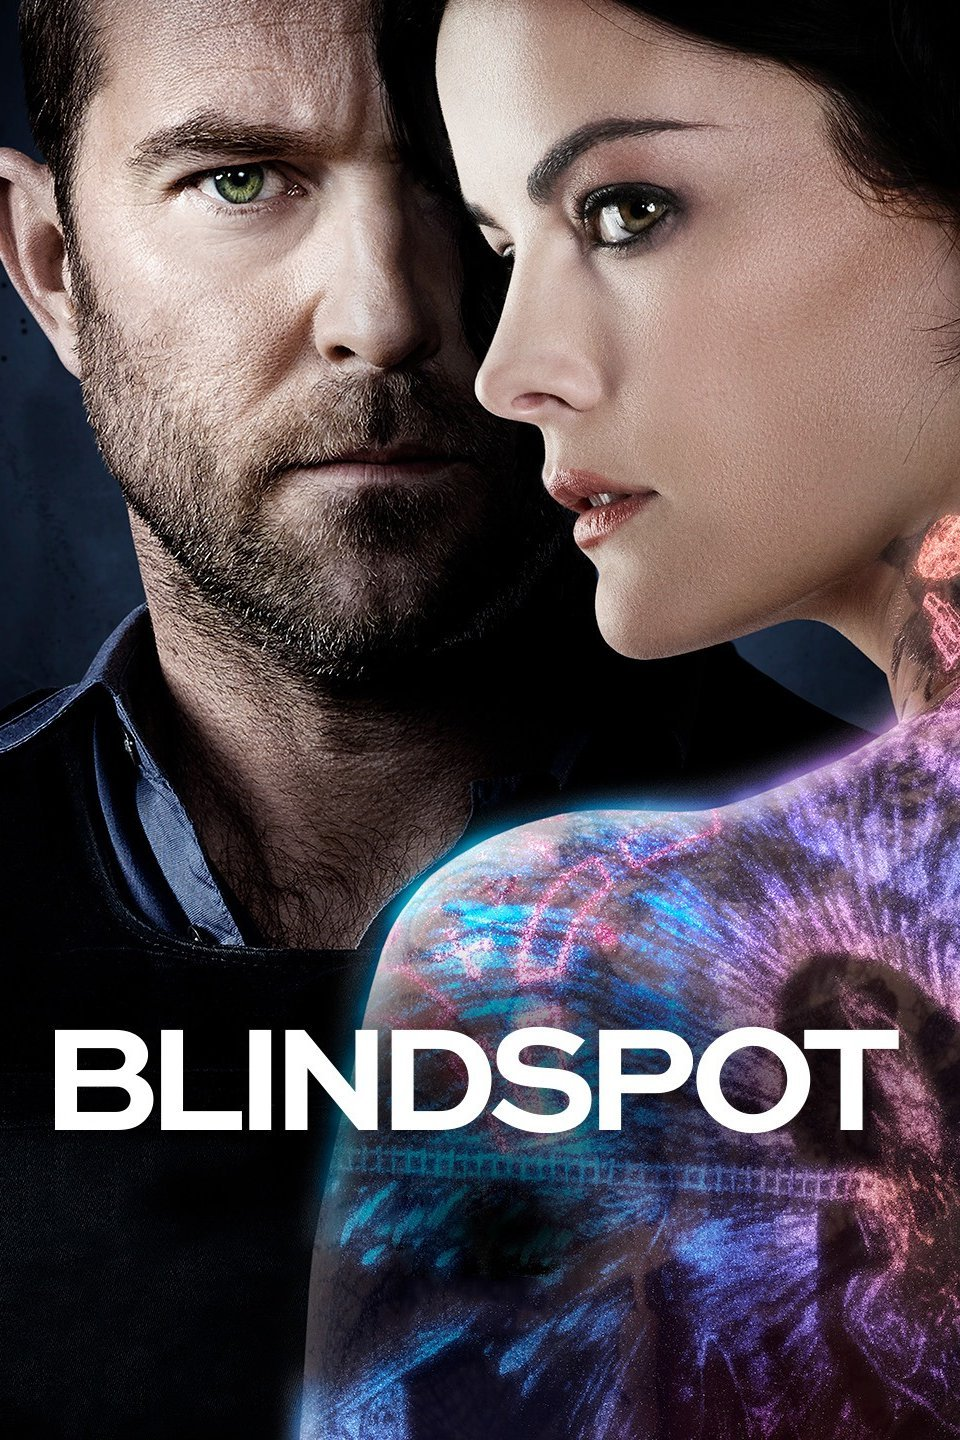 Blindspot Season 3 Episode 16 Download WEBRip 480p 720p